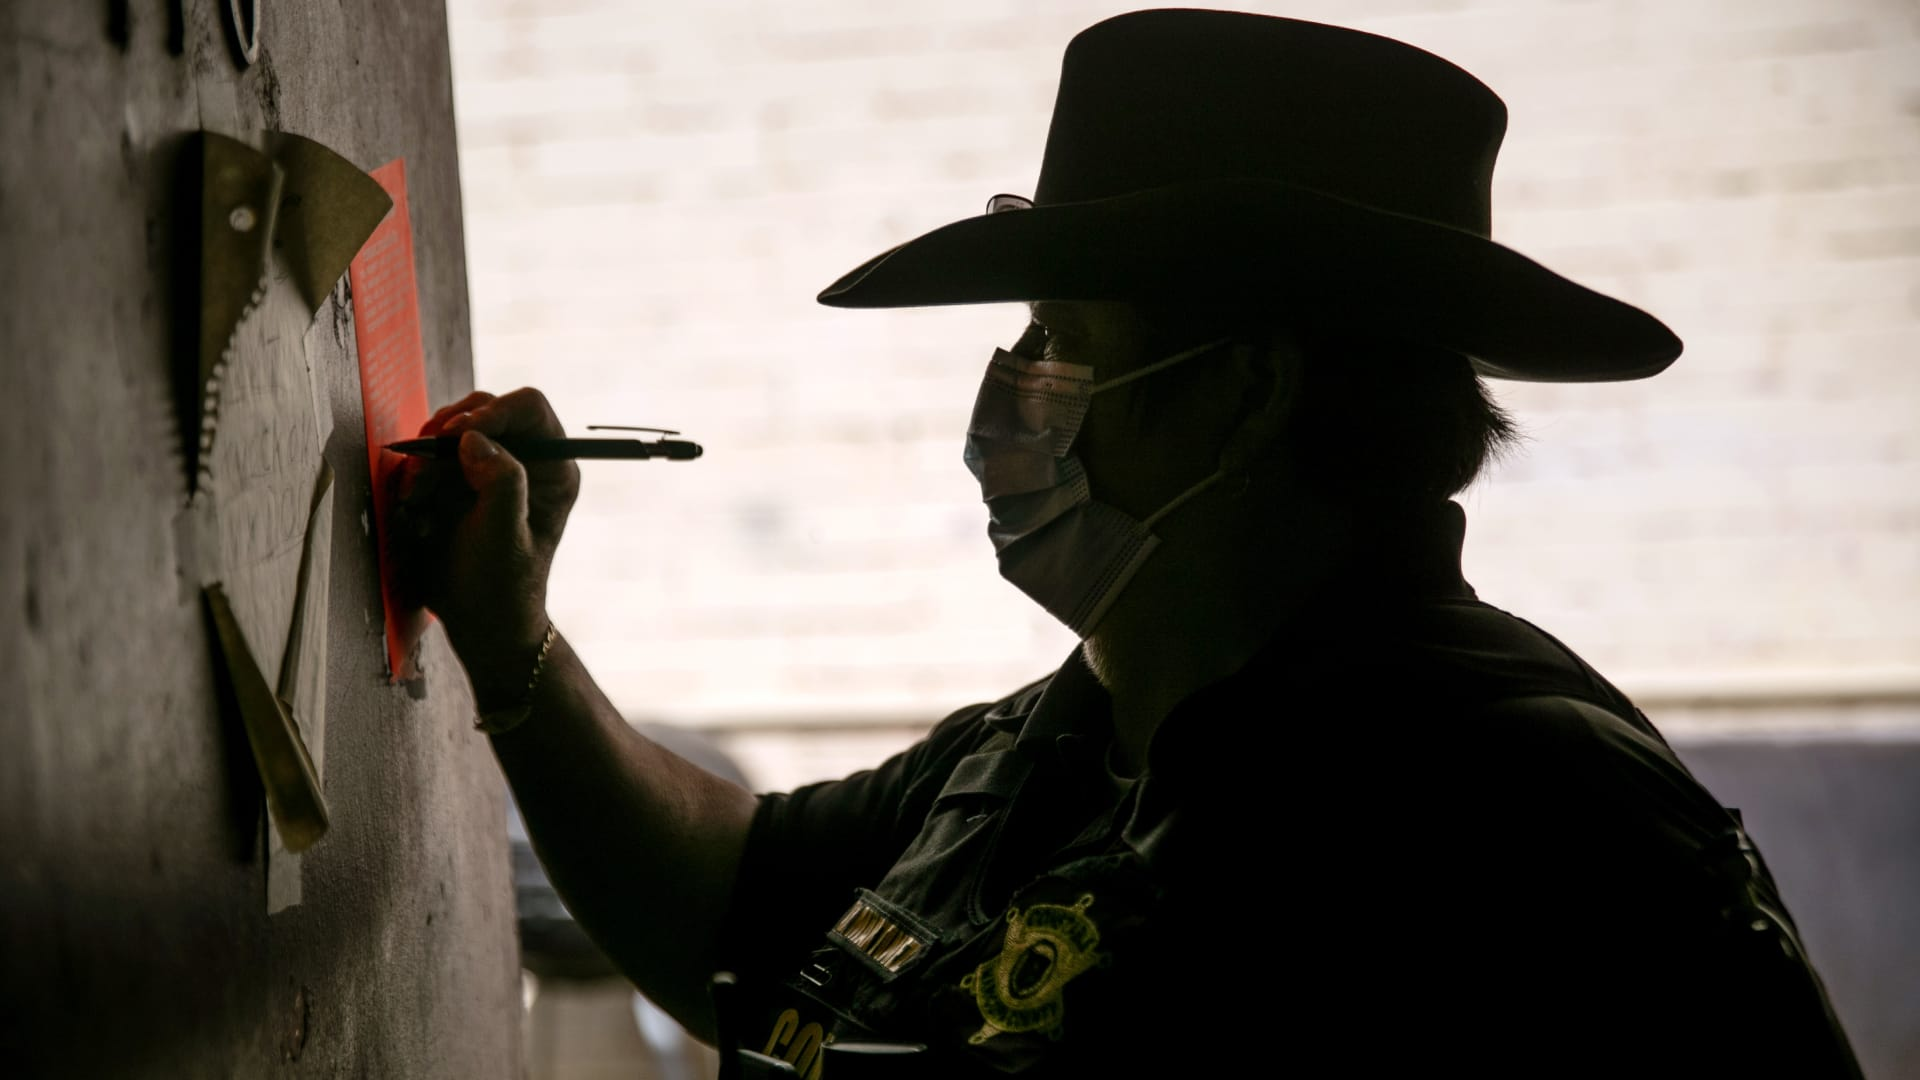 Maricopa County constable Darlene Martinez signs an eviction order on Oct. 7, 2020 in Phoenix, Arizona.